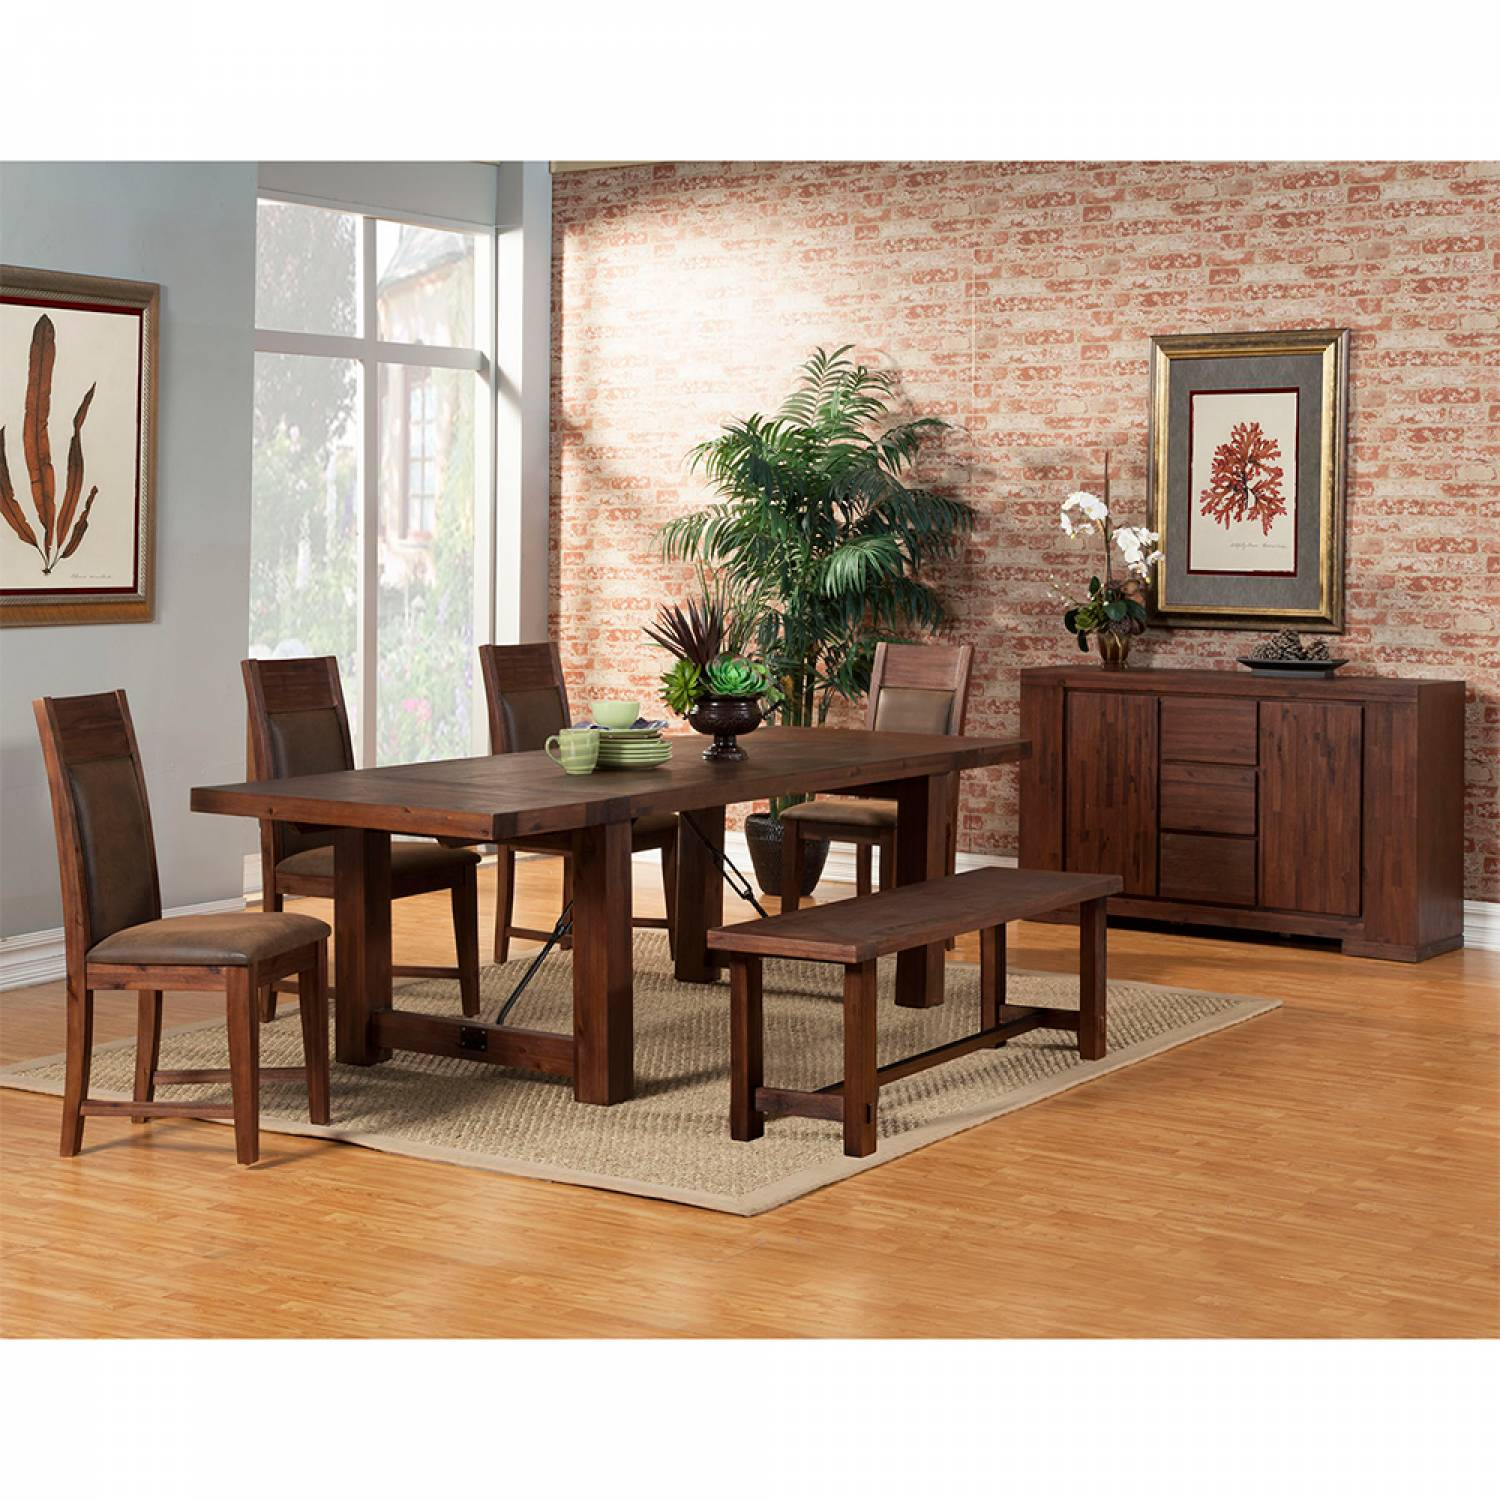 8104 Alpine Furniture 8104 01 Pierre 6pc Sets Dining Table 4 Chairs Bench